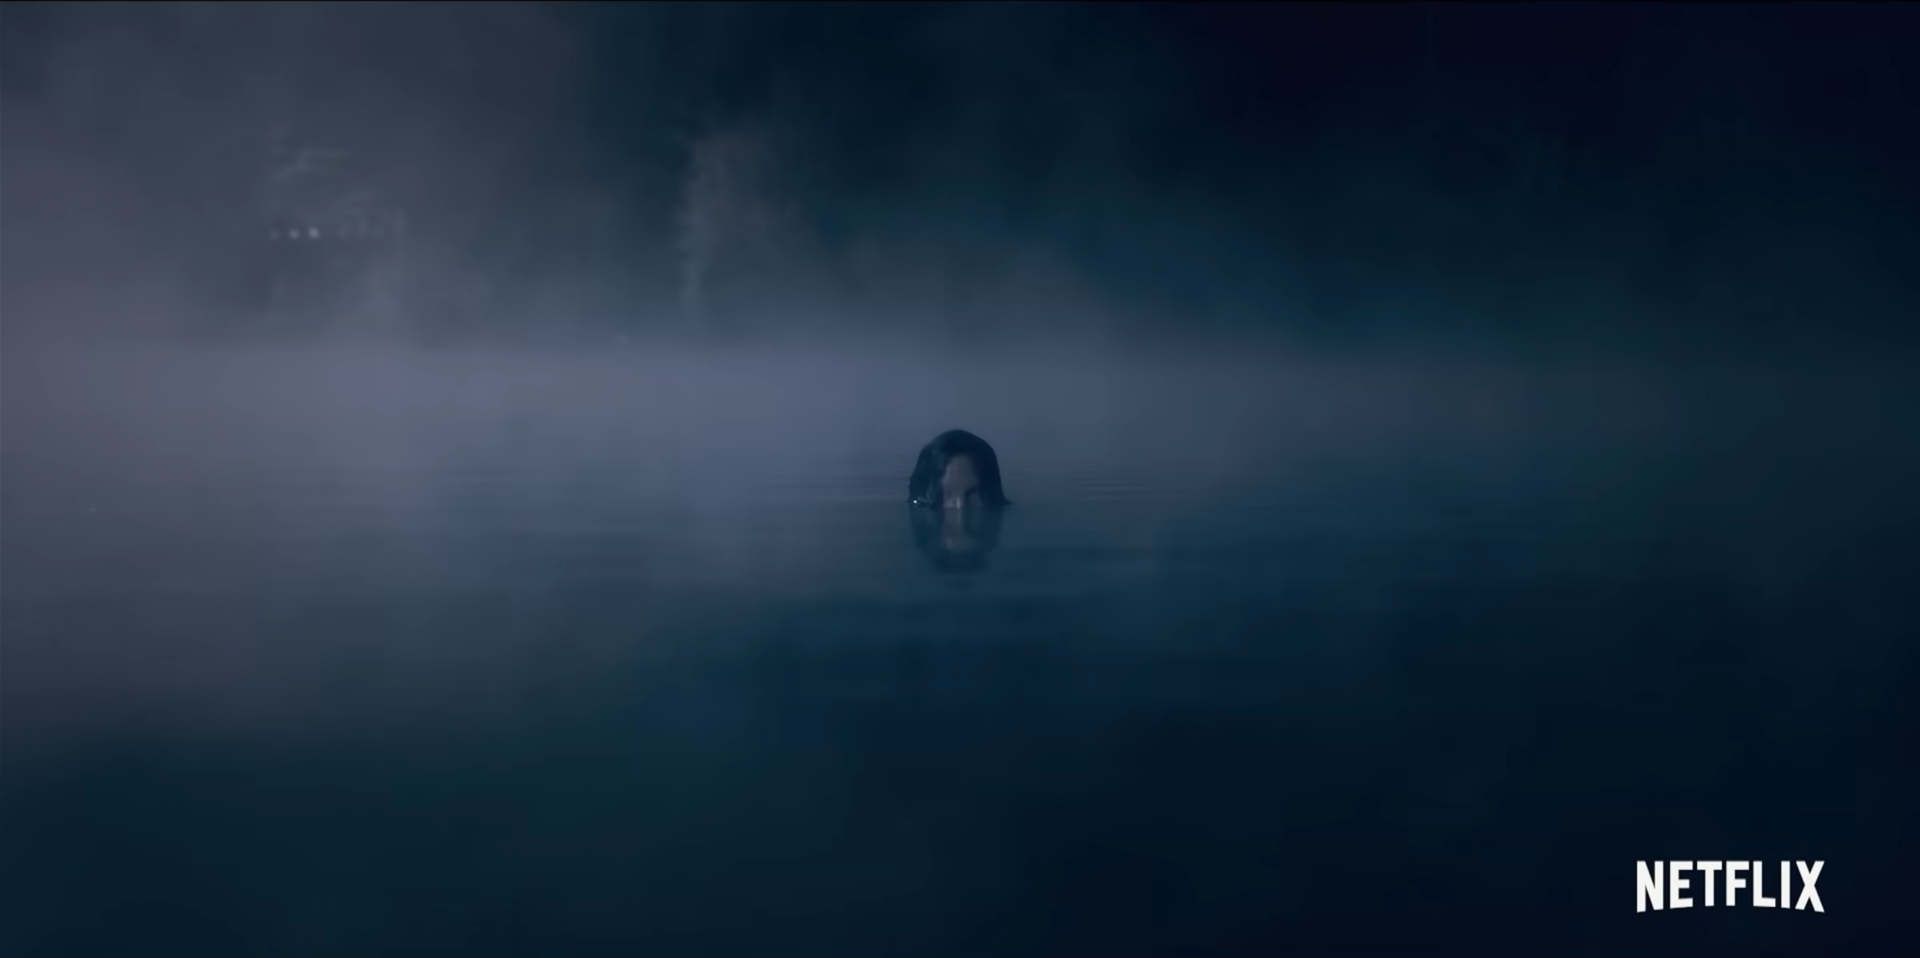 The Lady of the Lake rises from the water in The Haunting of Bly Manor